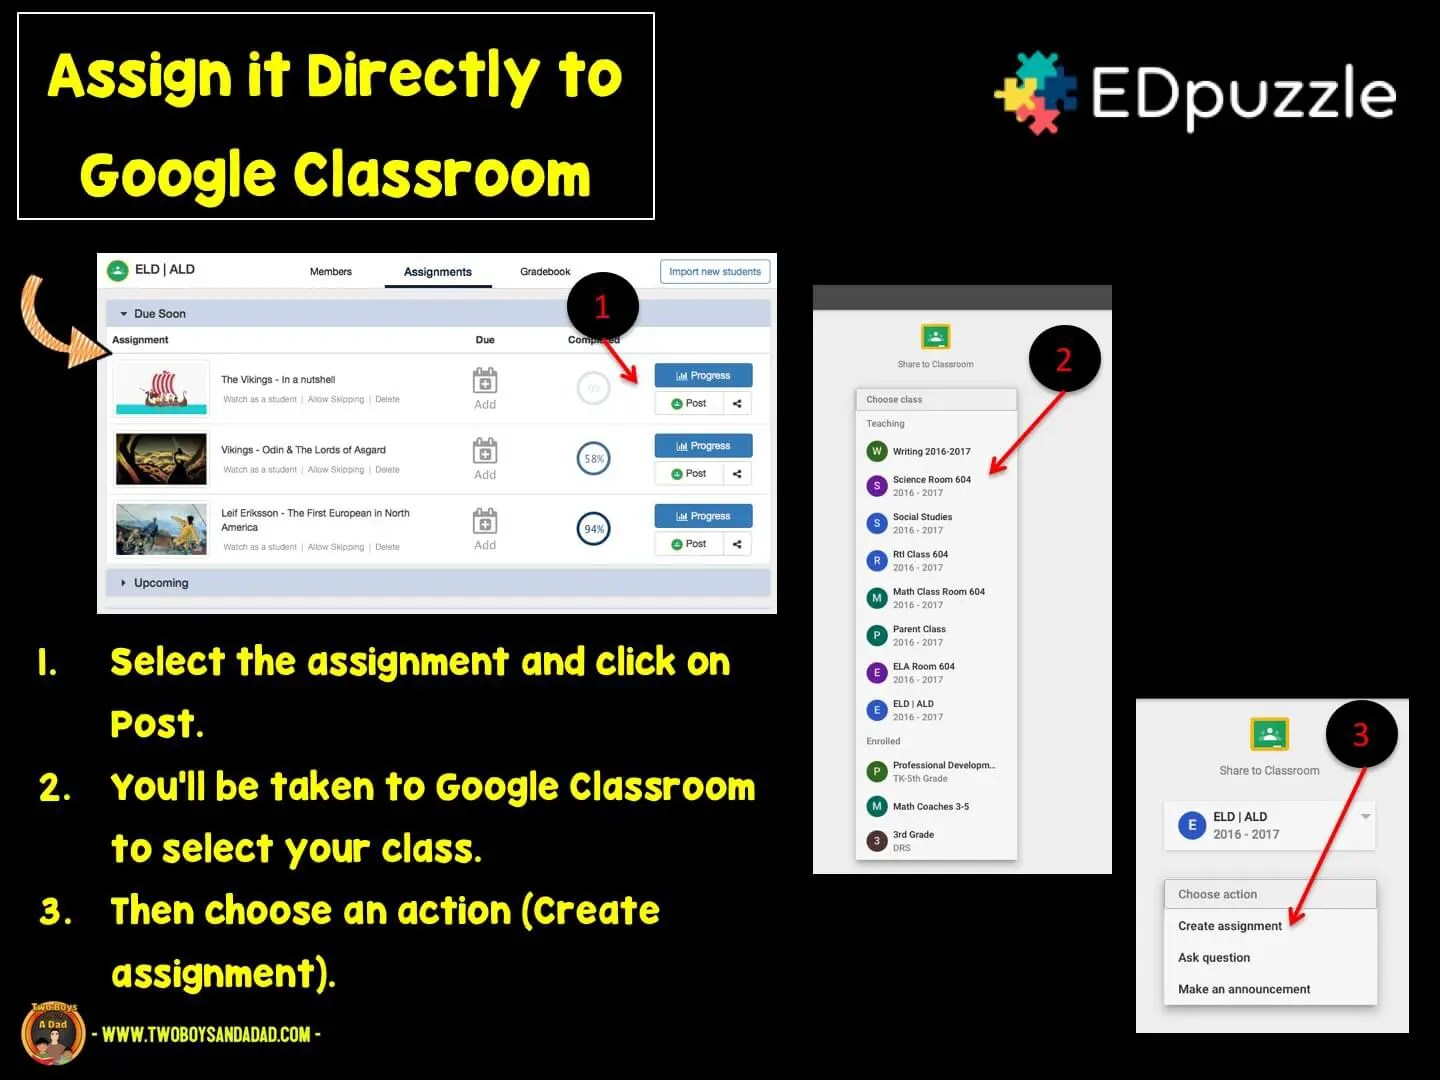 using videos in the classroom to teach